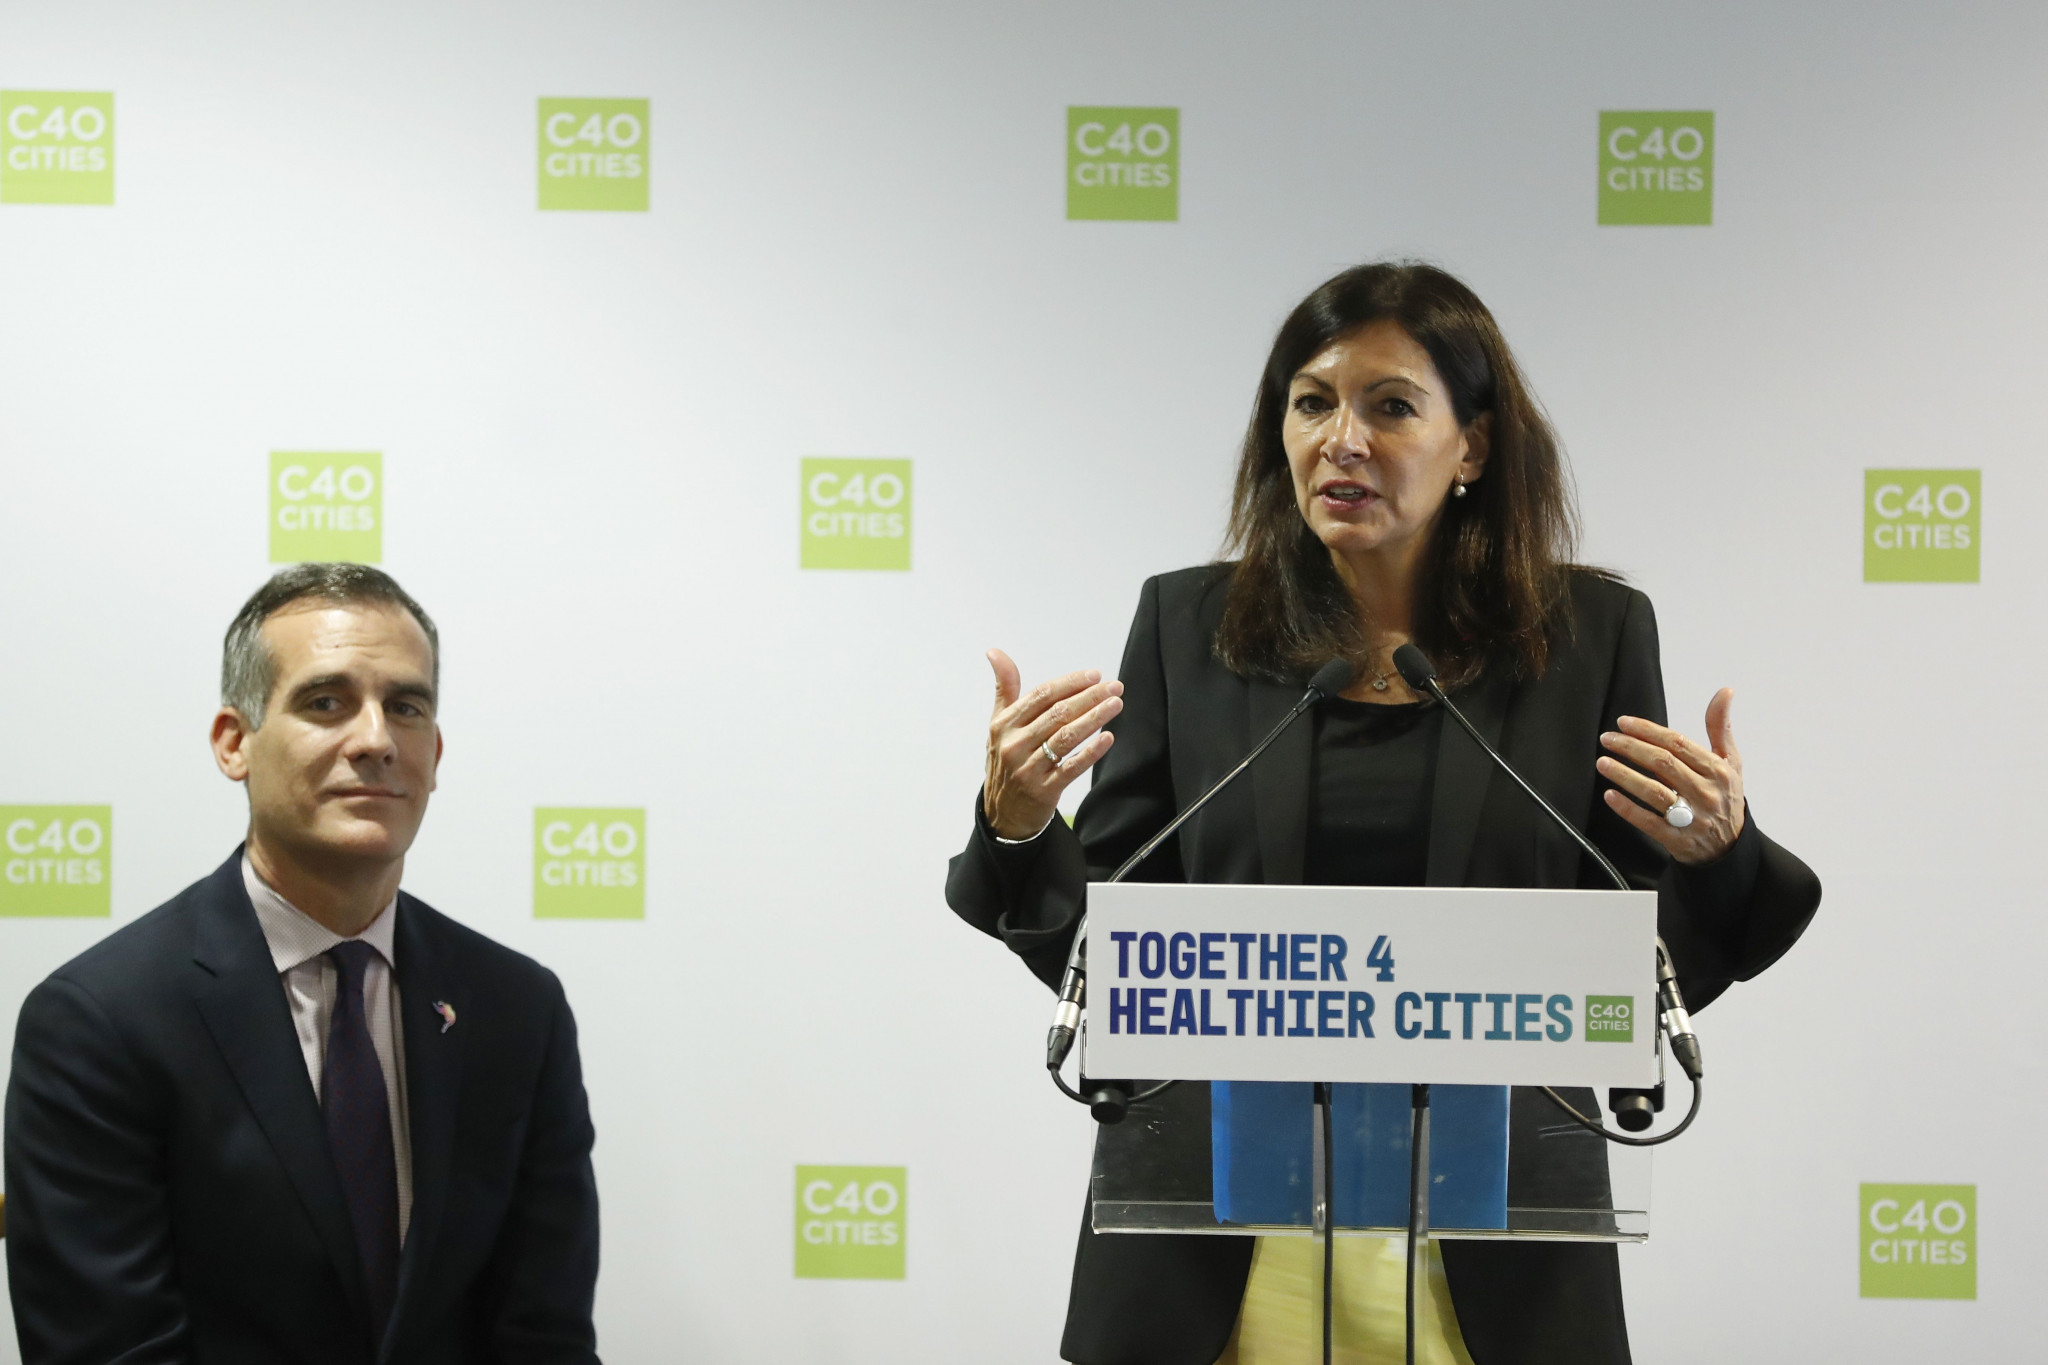 Paris and Los Angeles Mayors express hope to make Olympic Games more sustainable at climate event